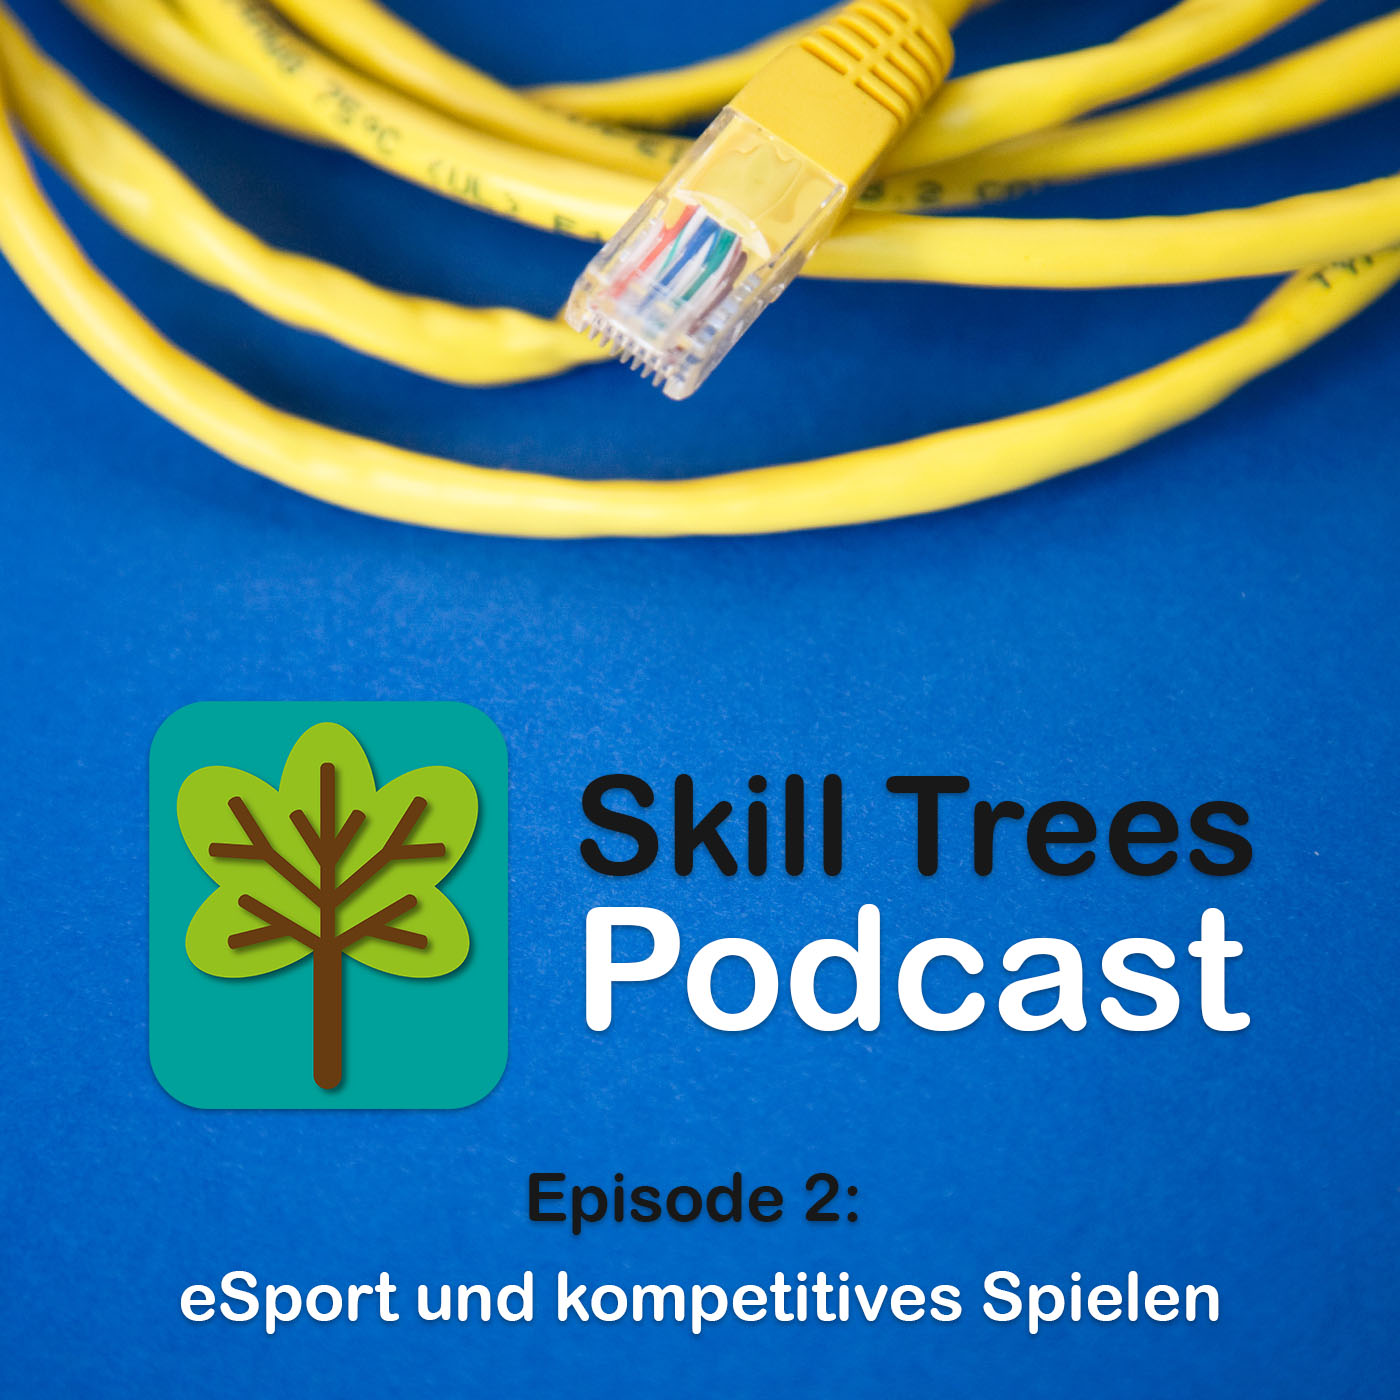 Skill Trees Podcast Episode 2: eSport und kompetitives Spielen